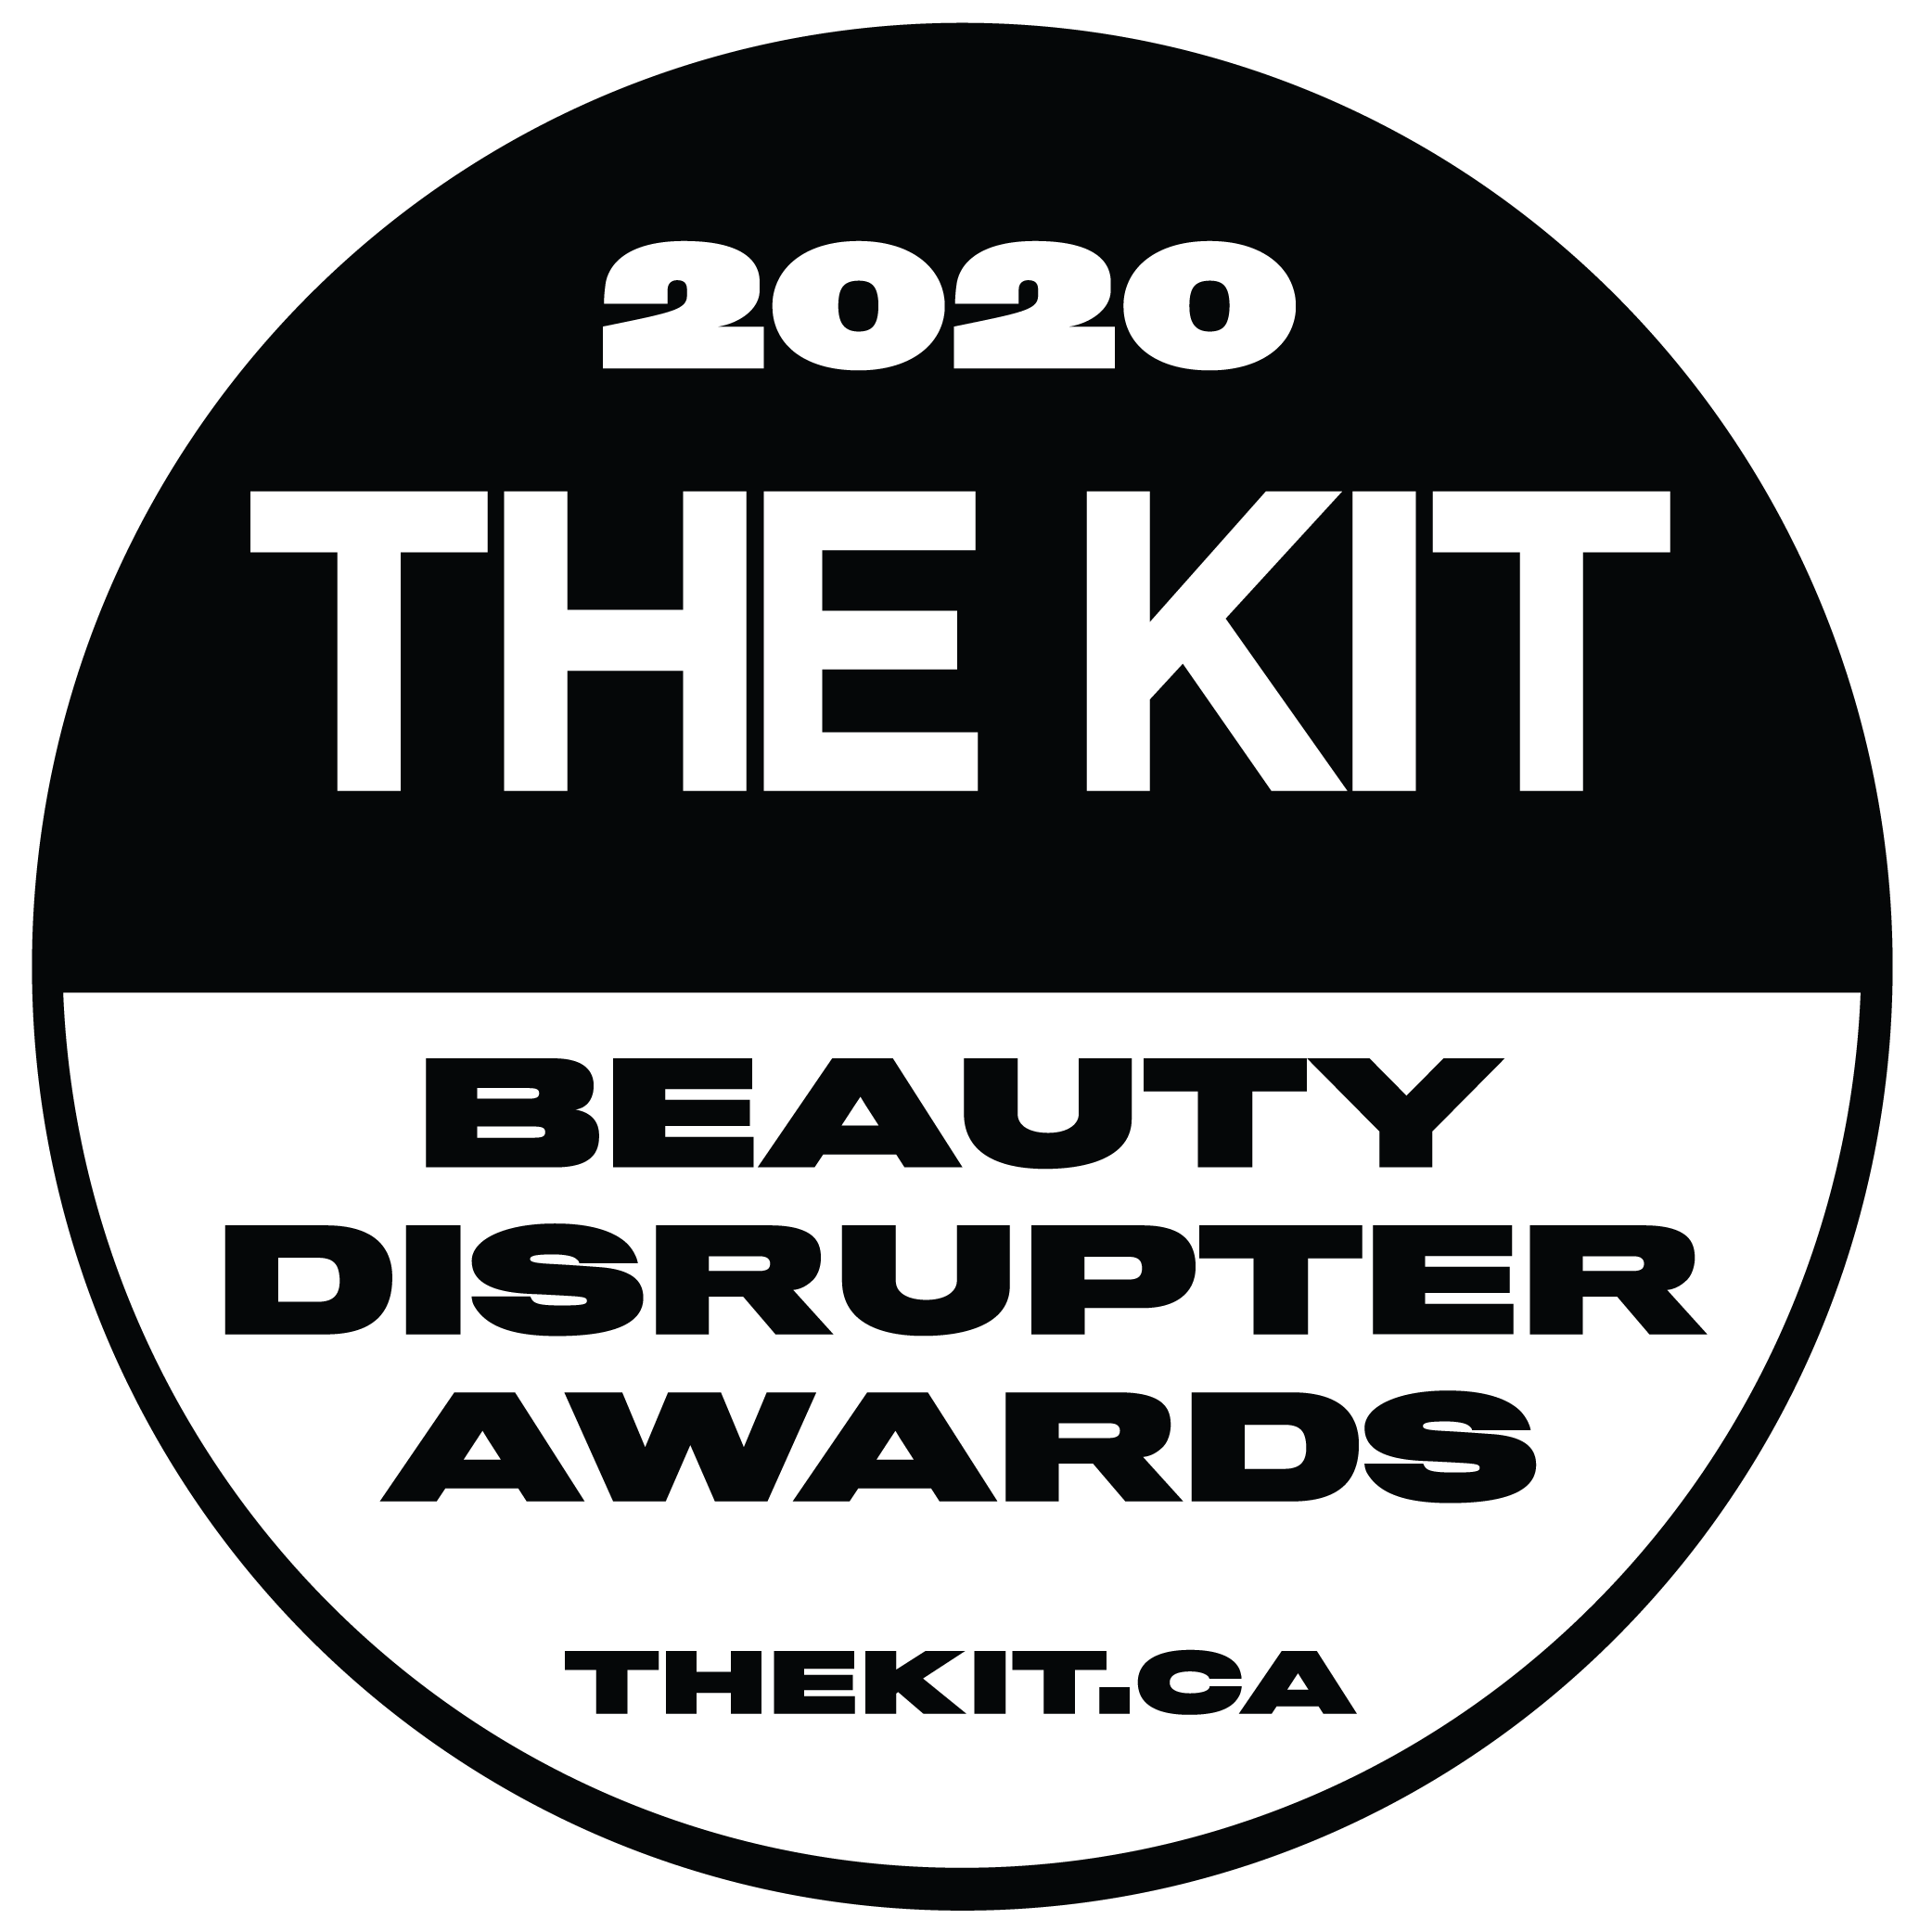 2020 Beauty Disruptor Awards - The Kit